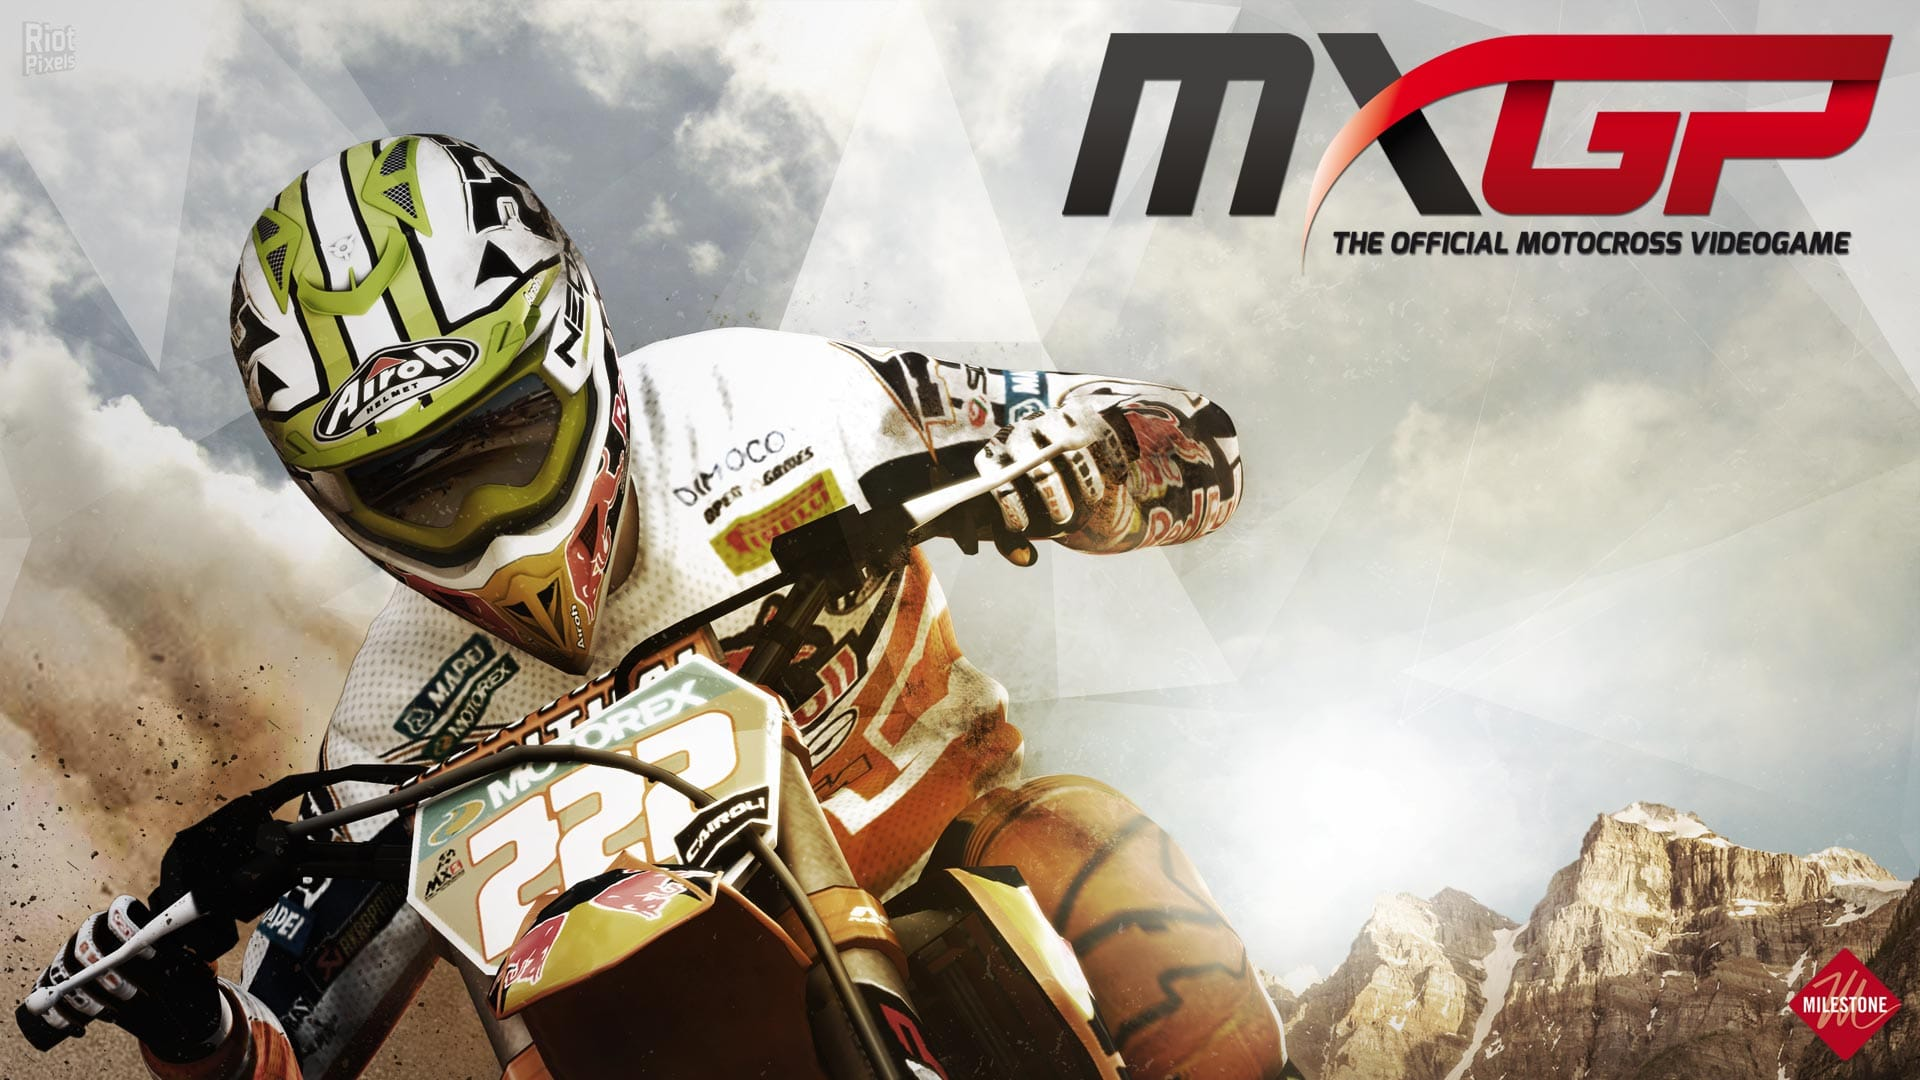 Mxgp-the-Official-Motocross